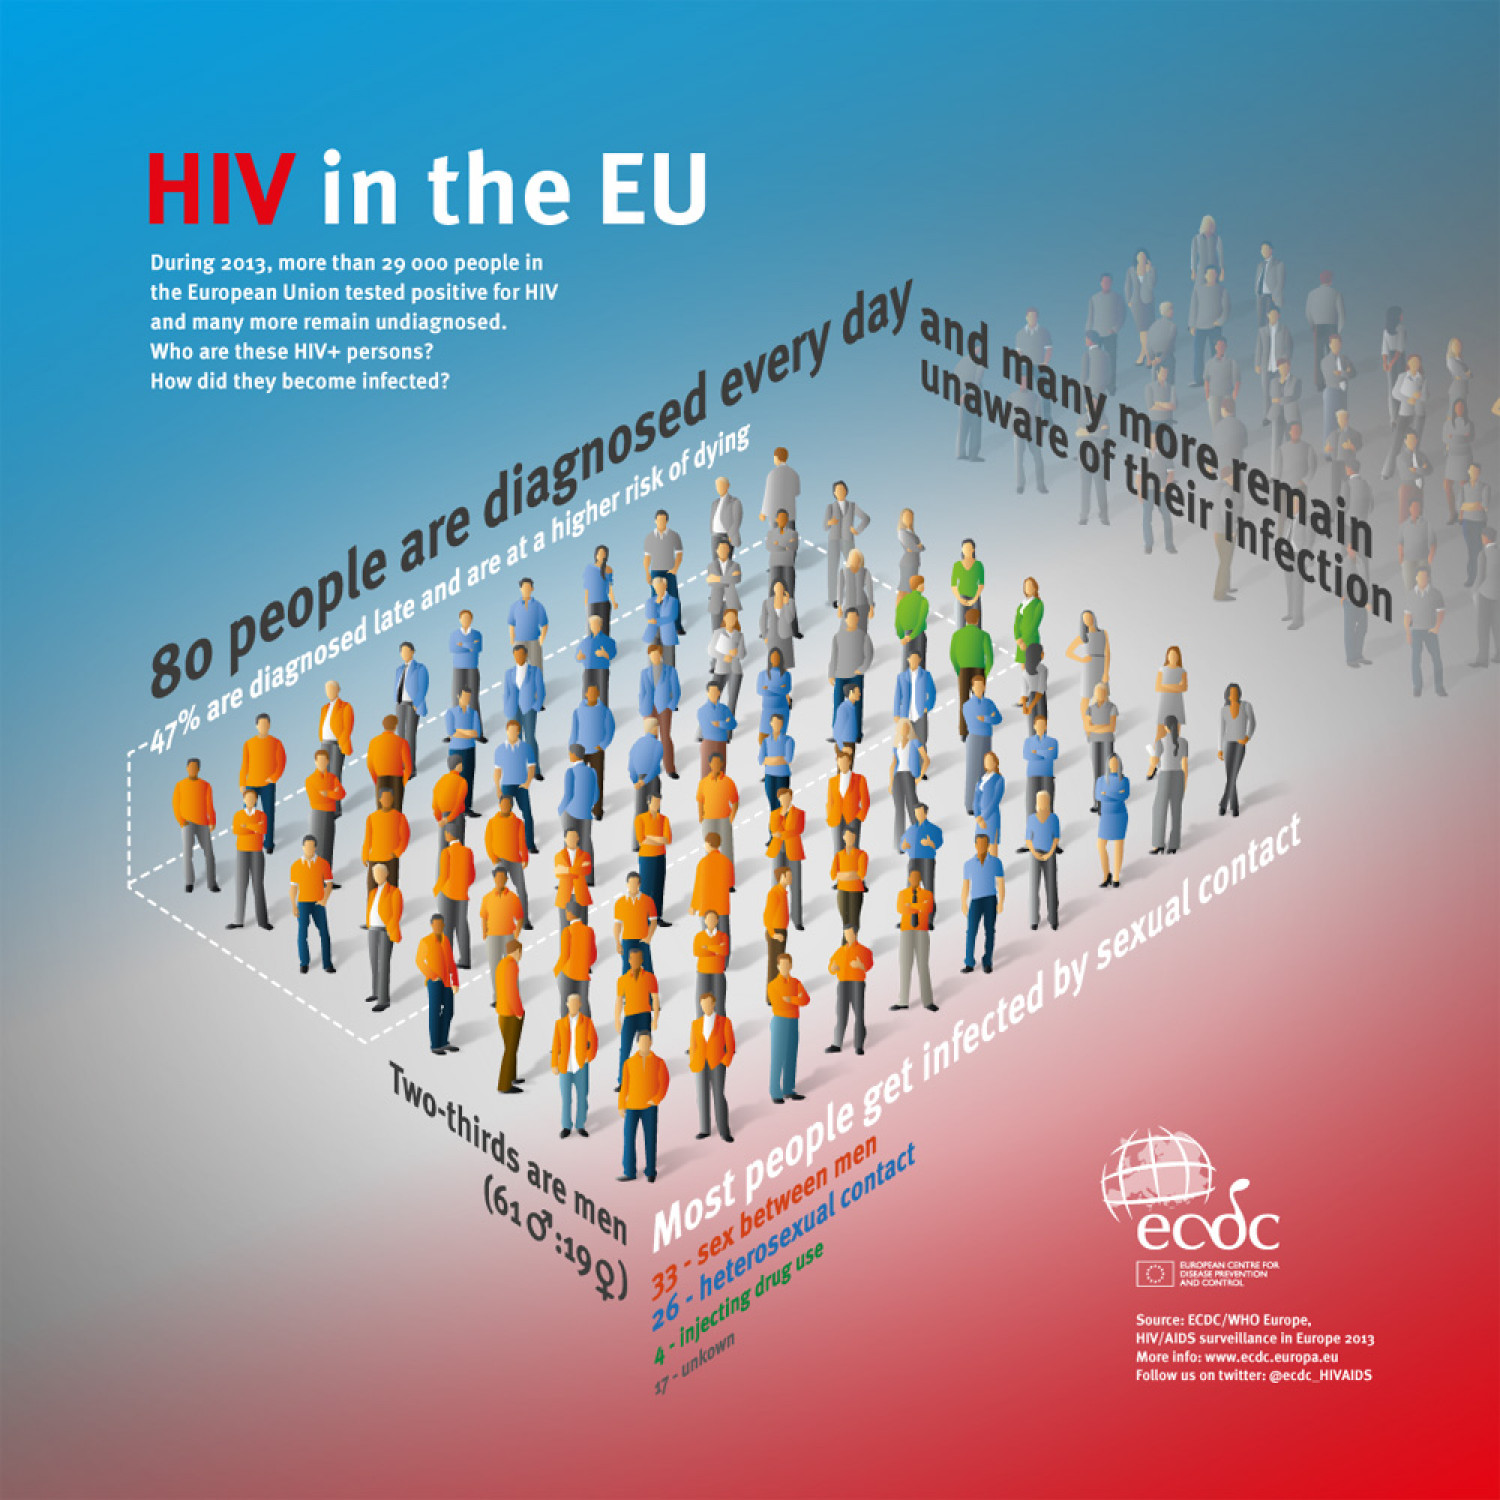 HIV in the EU (2014) Infographic